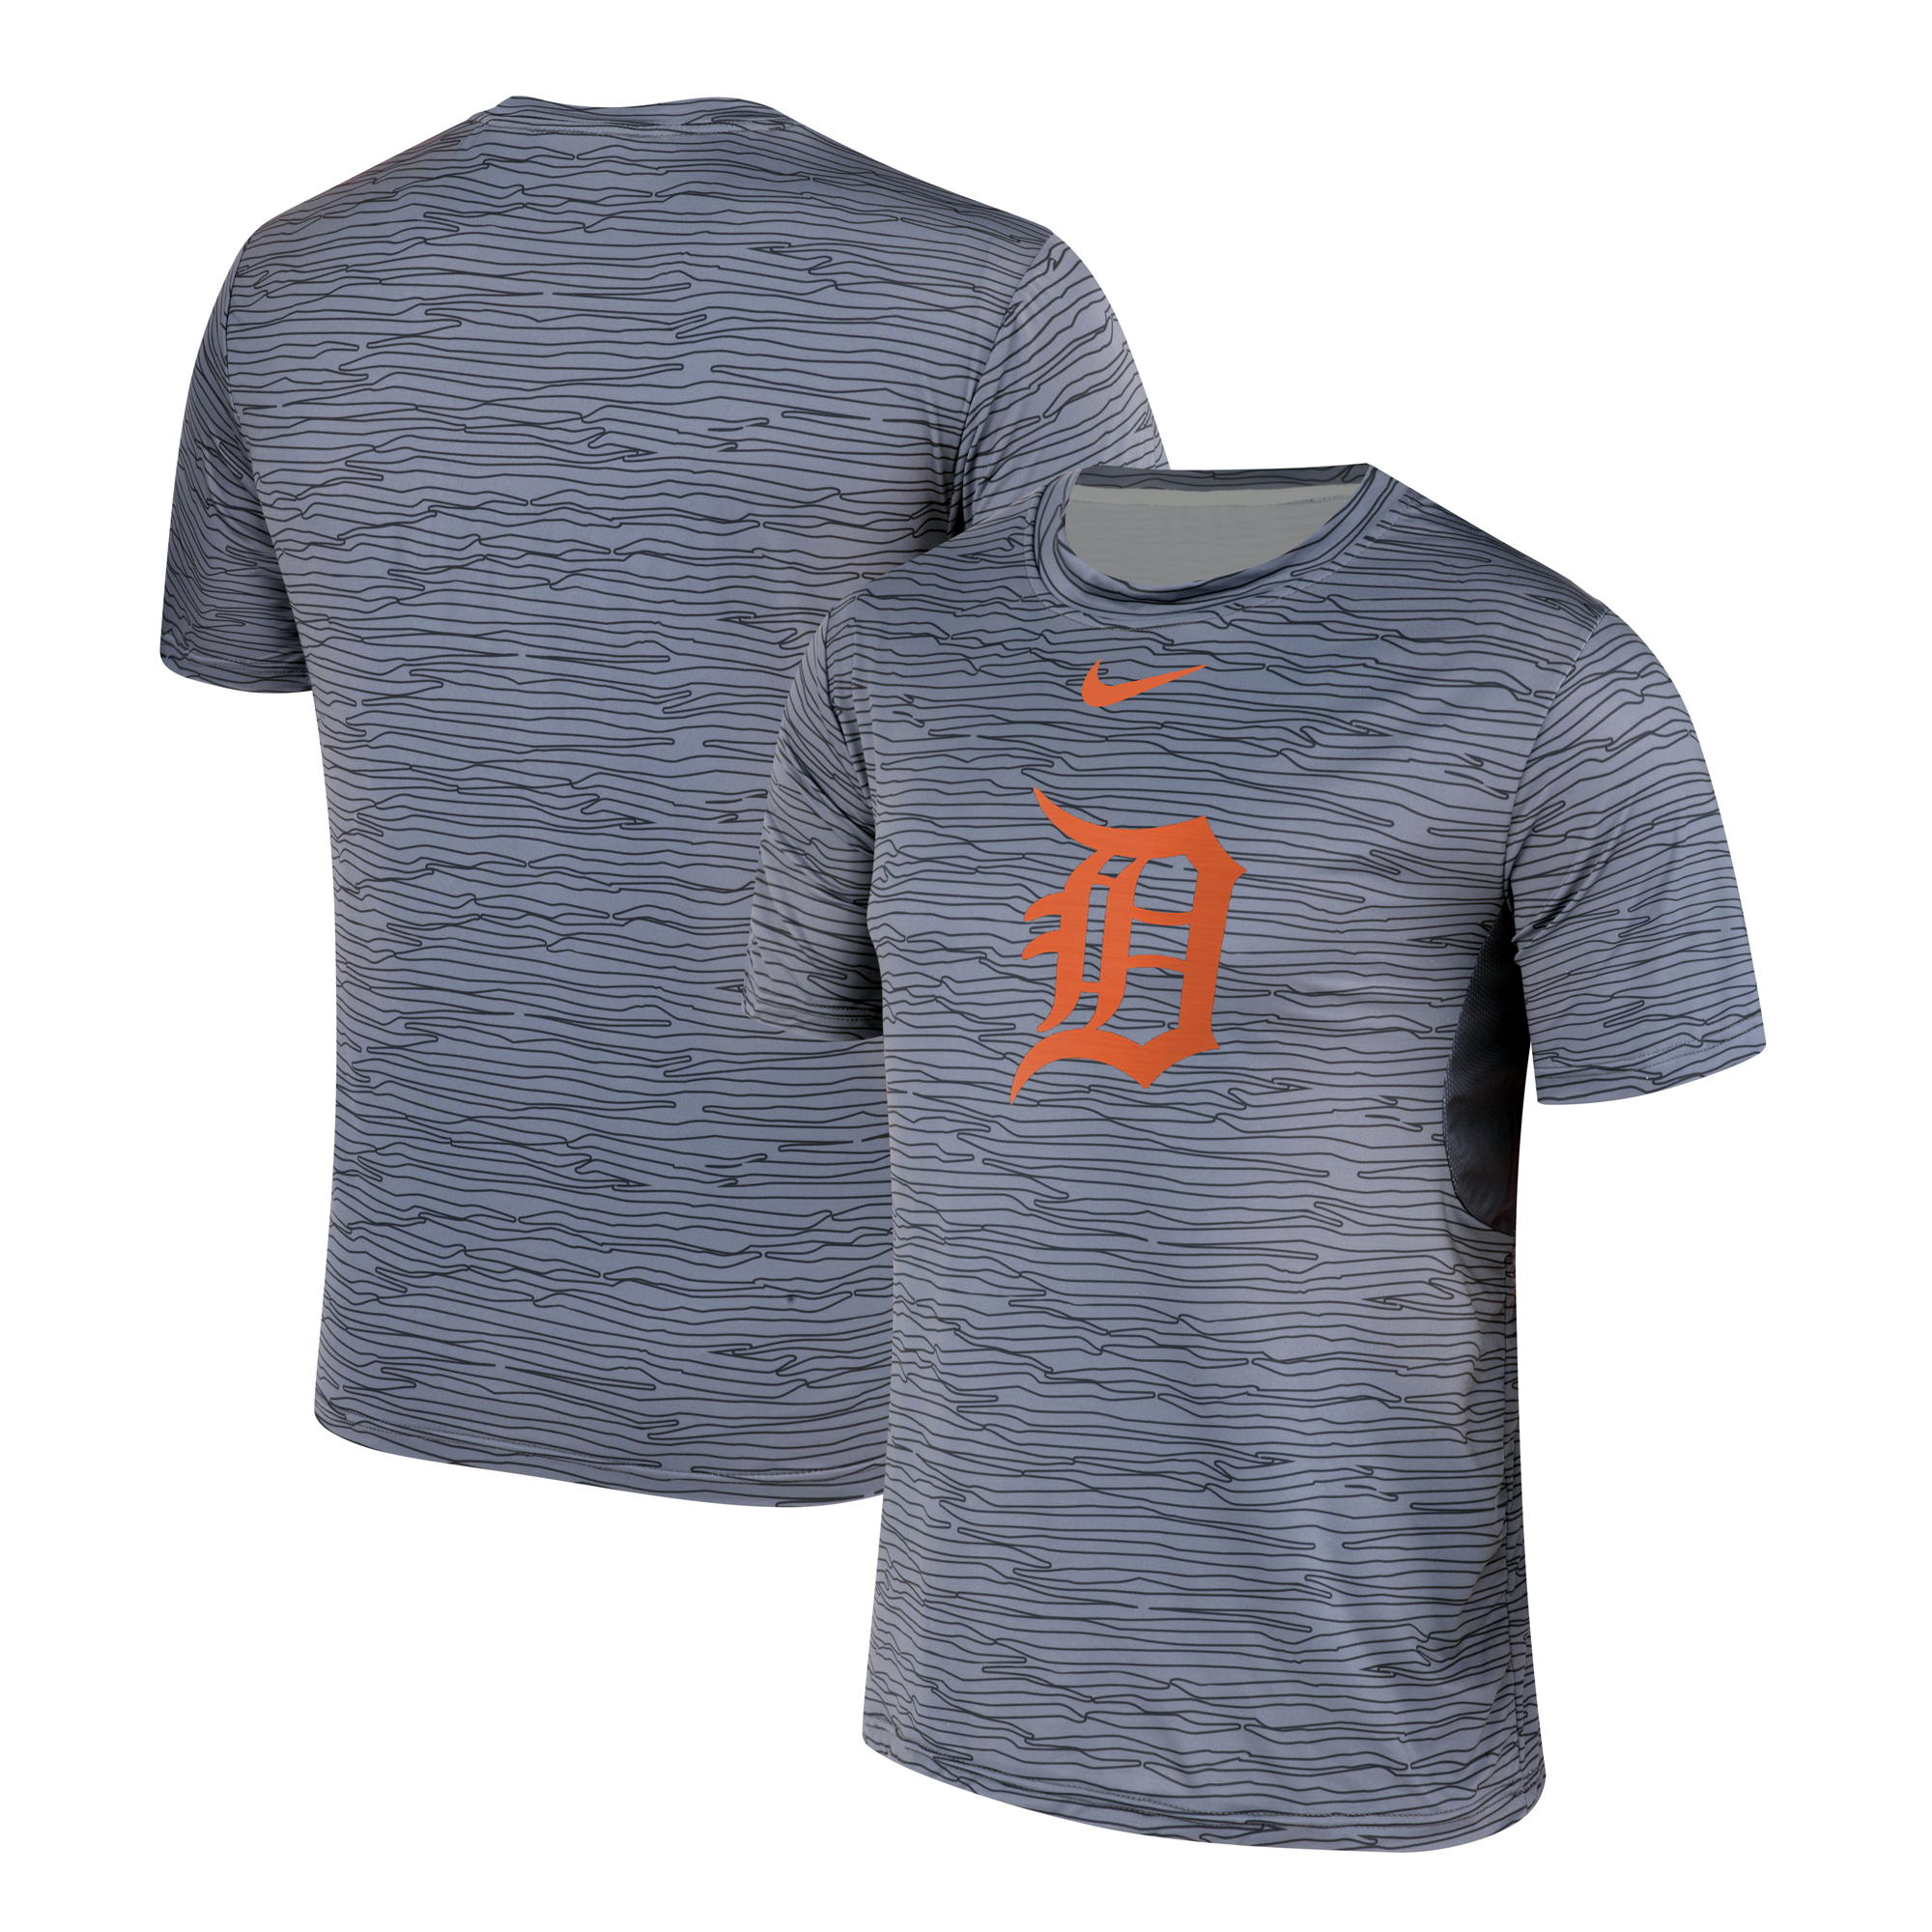 Nike Detroit Tigers Gray Black Striped Logo Performance T-Shirt